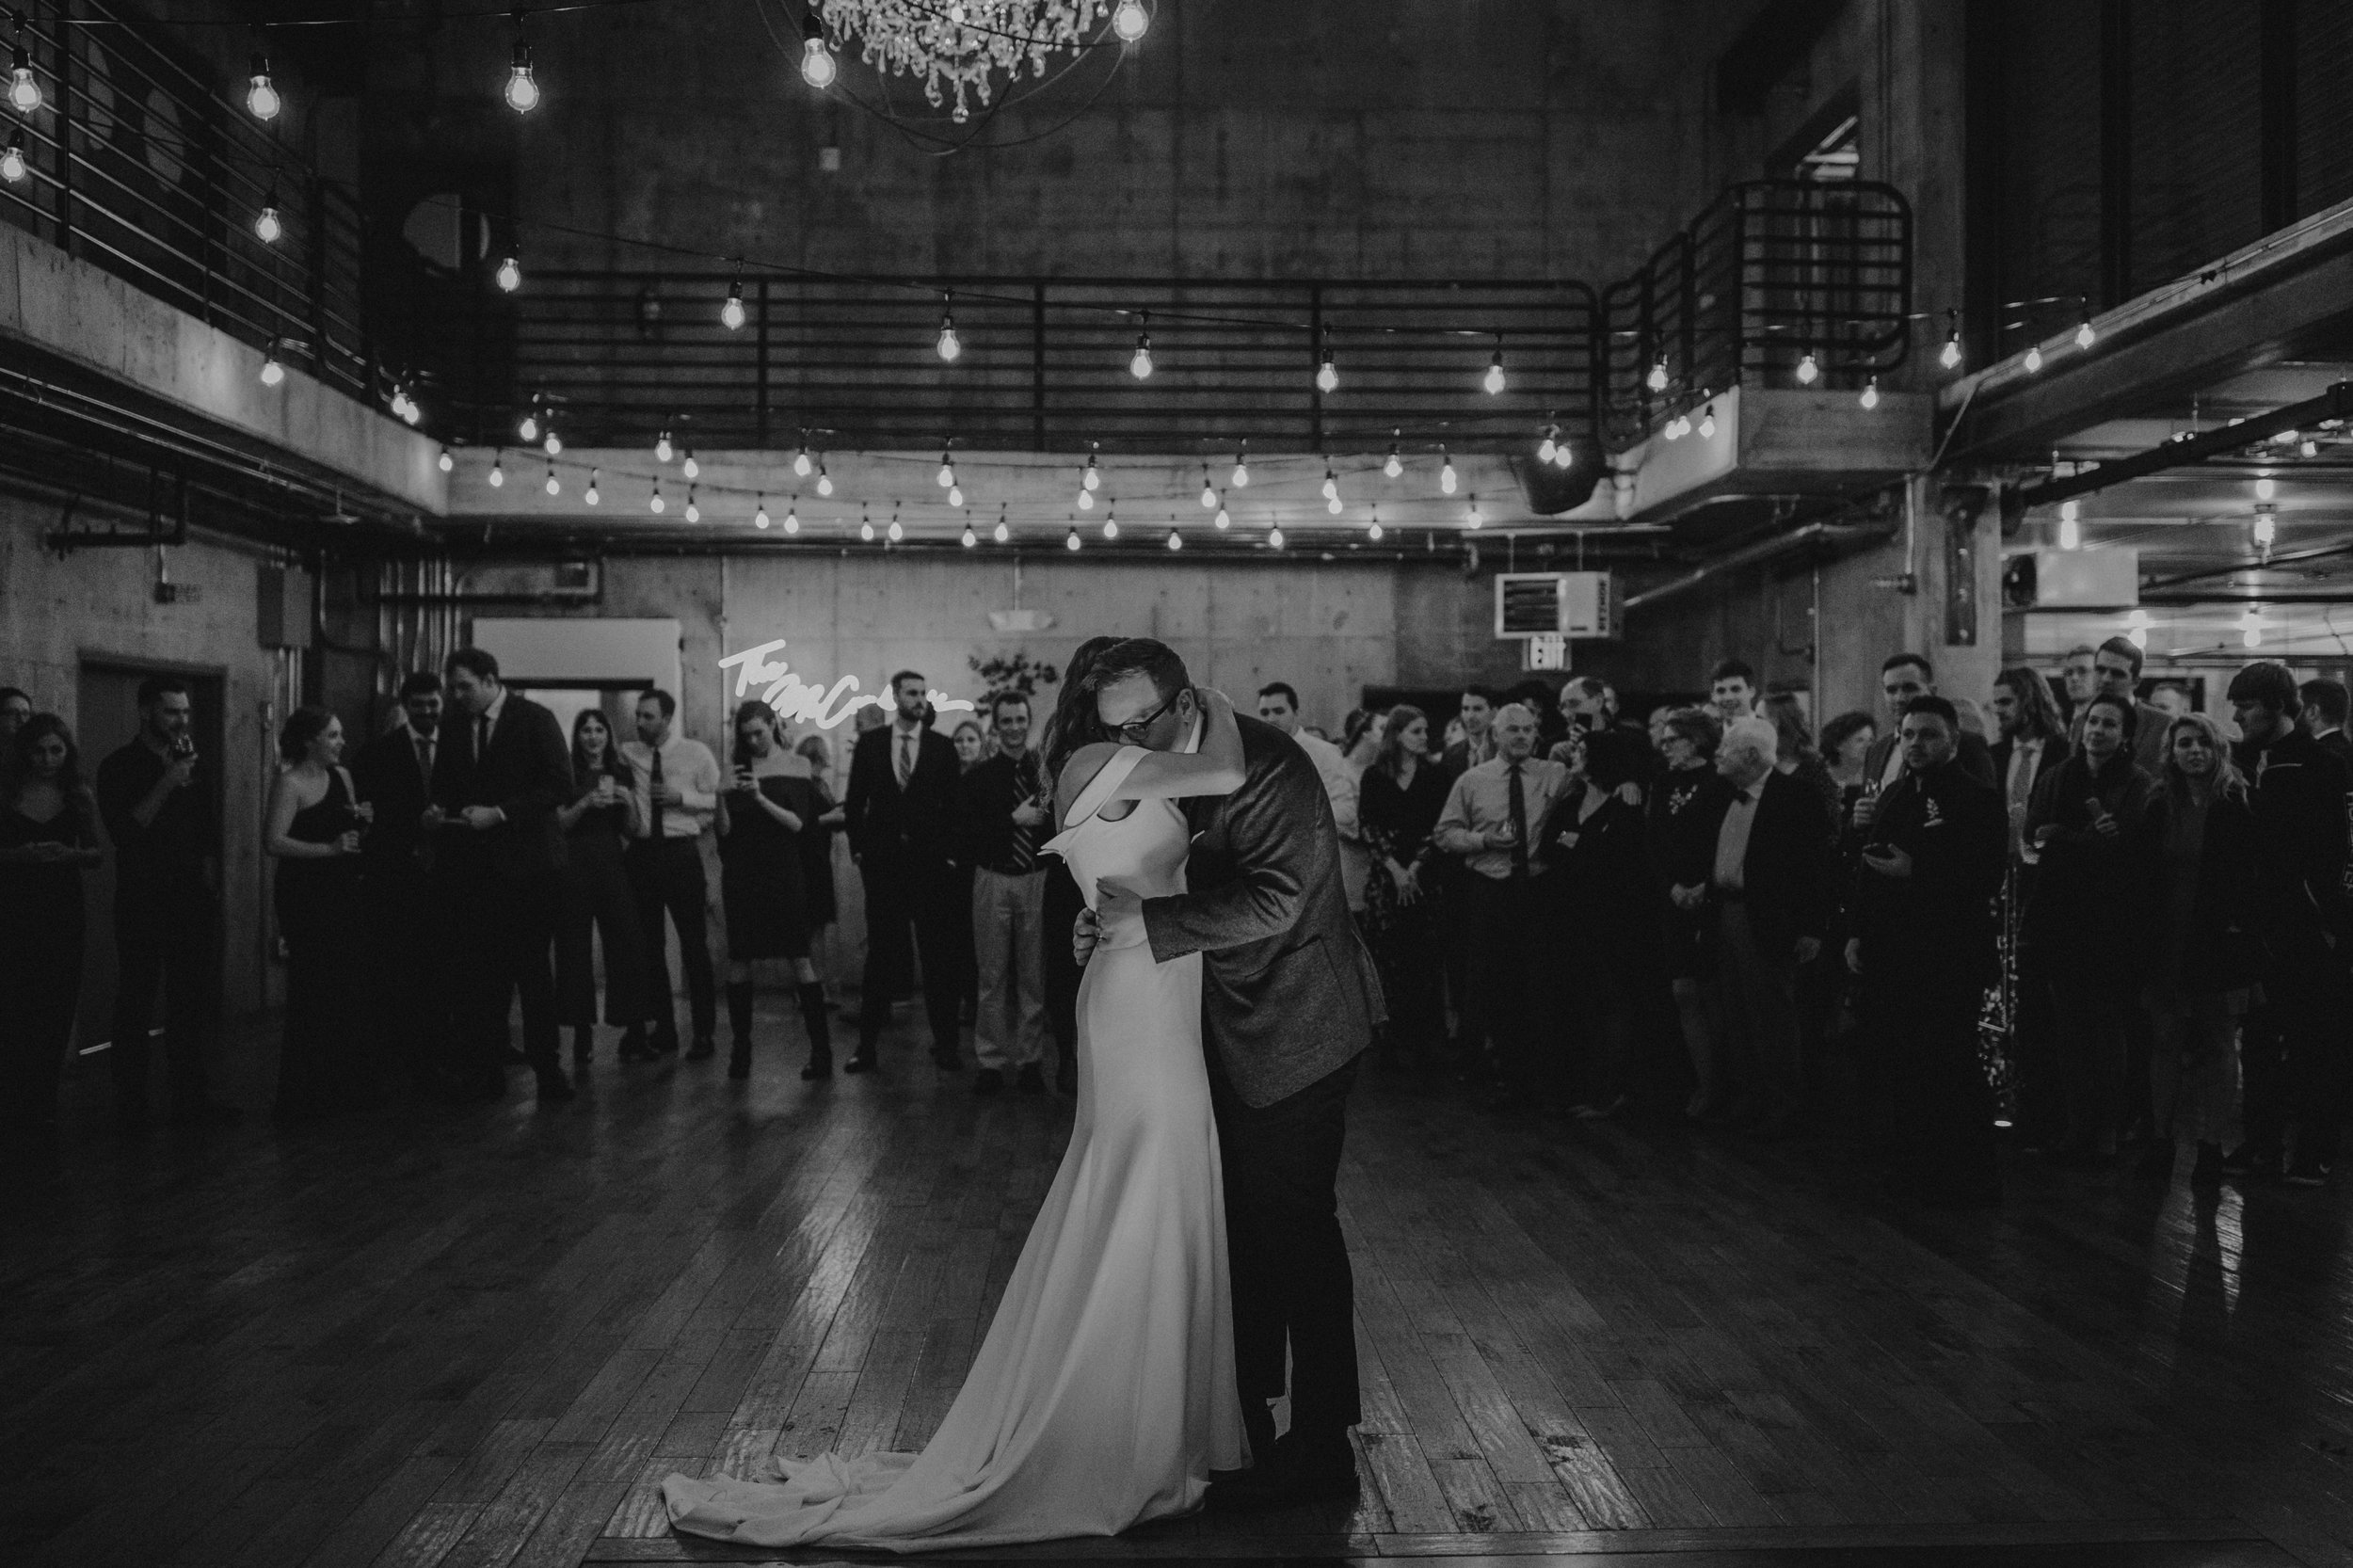 fremont_foundry_seattle_wedding_oliviastrohm___-15.jpg